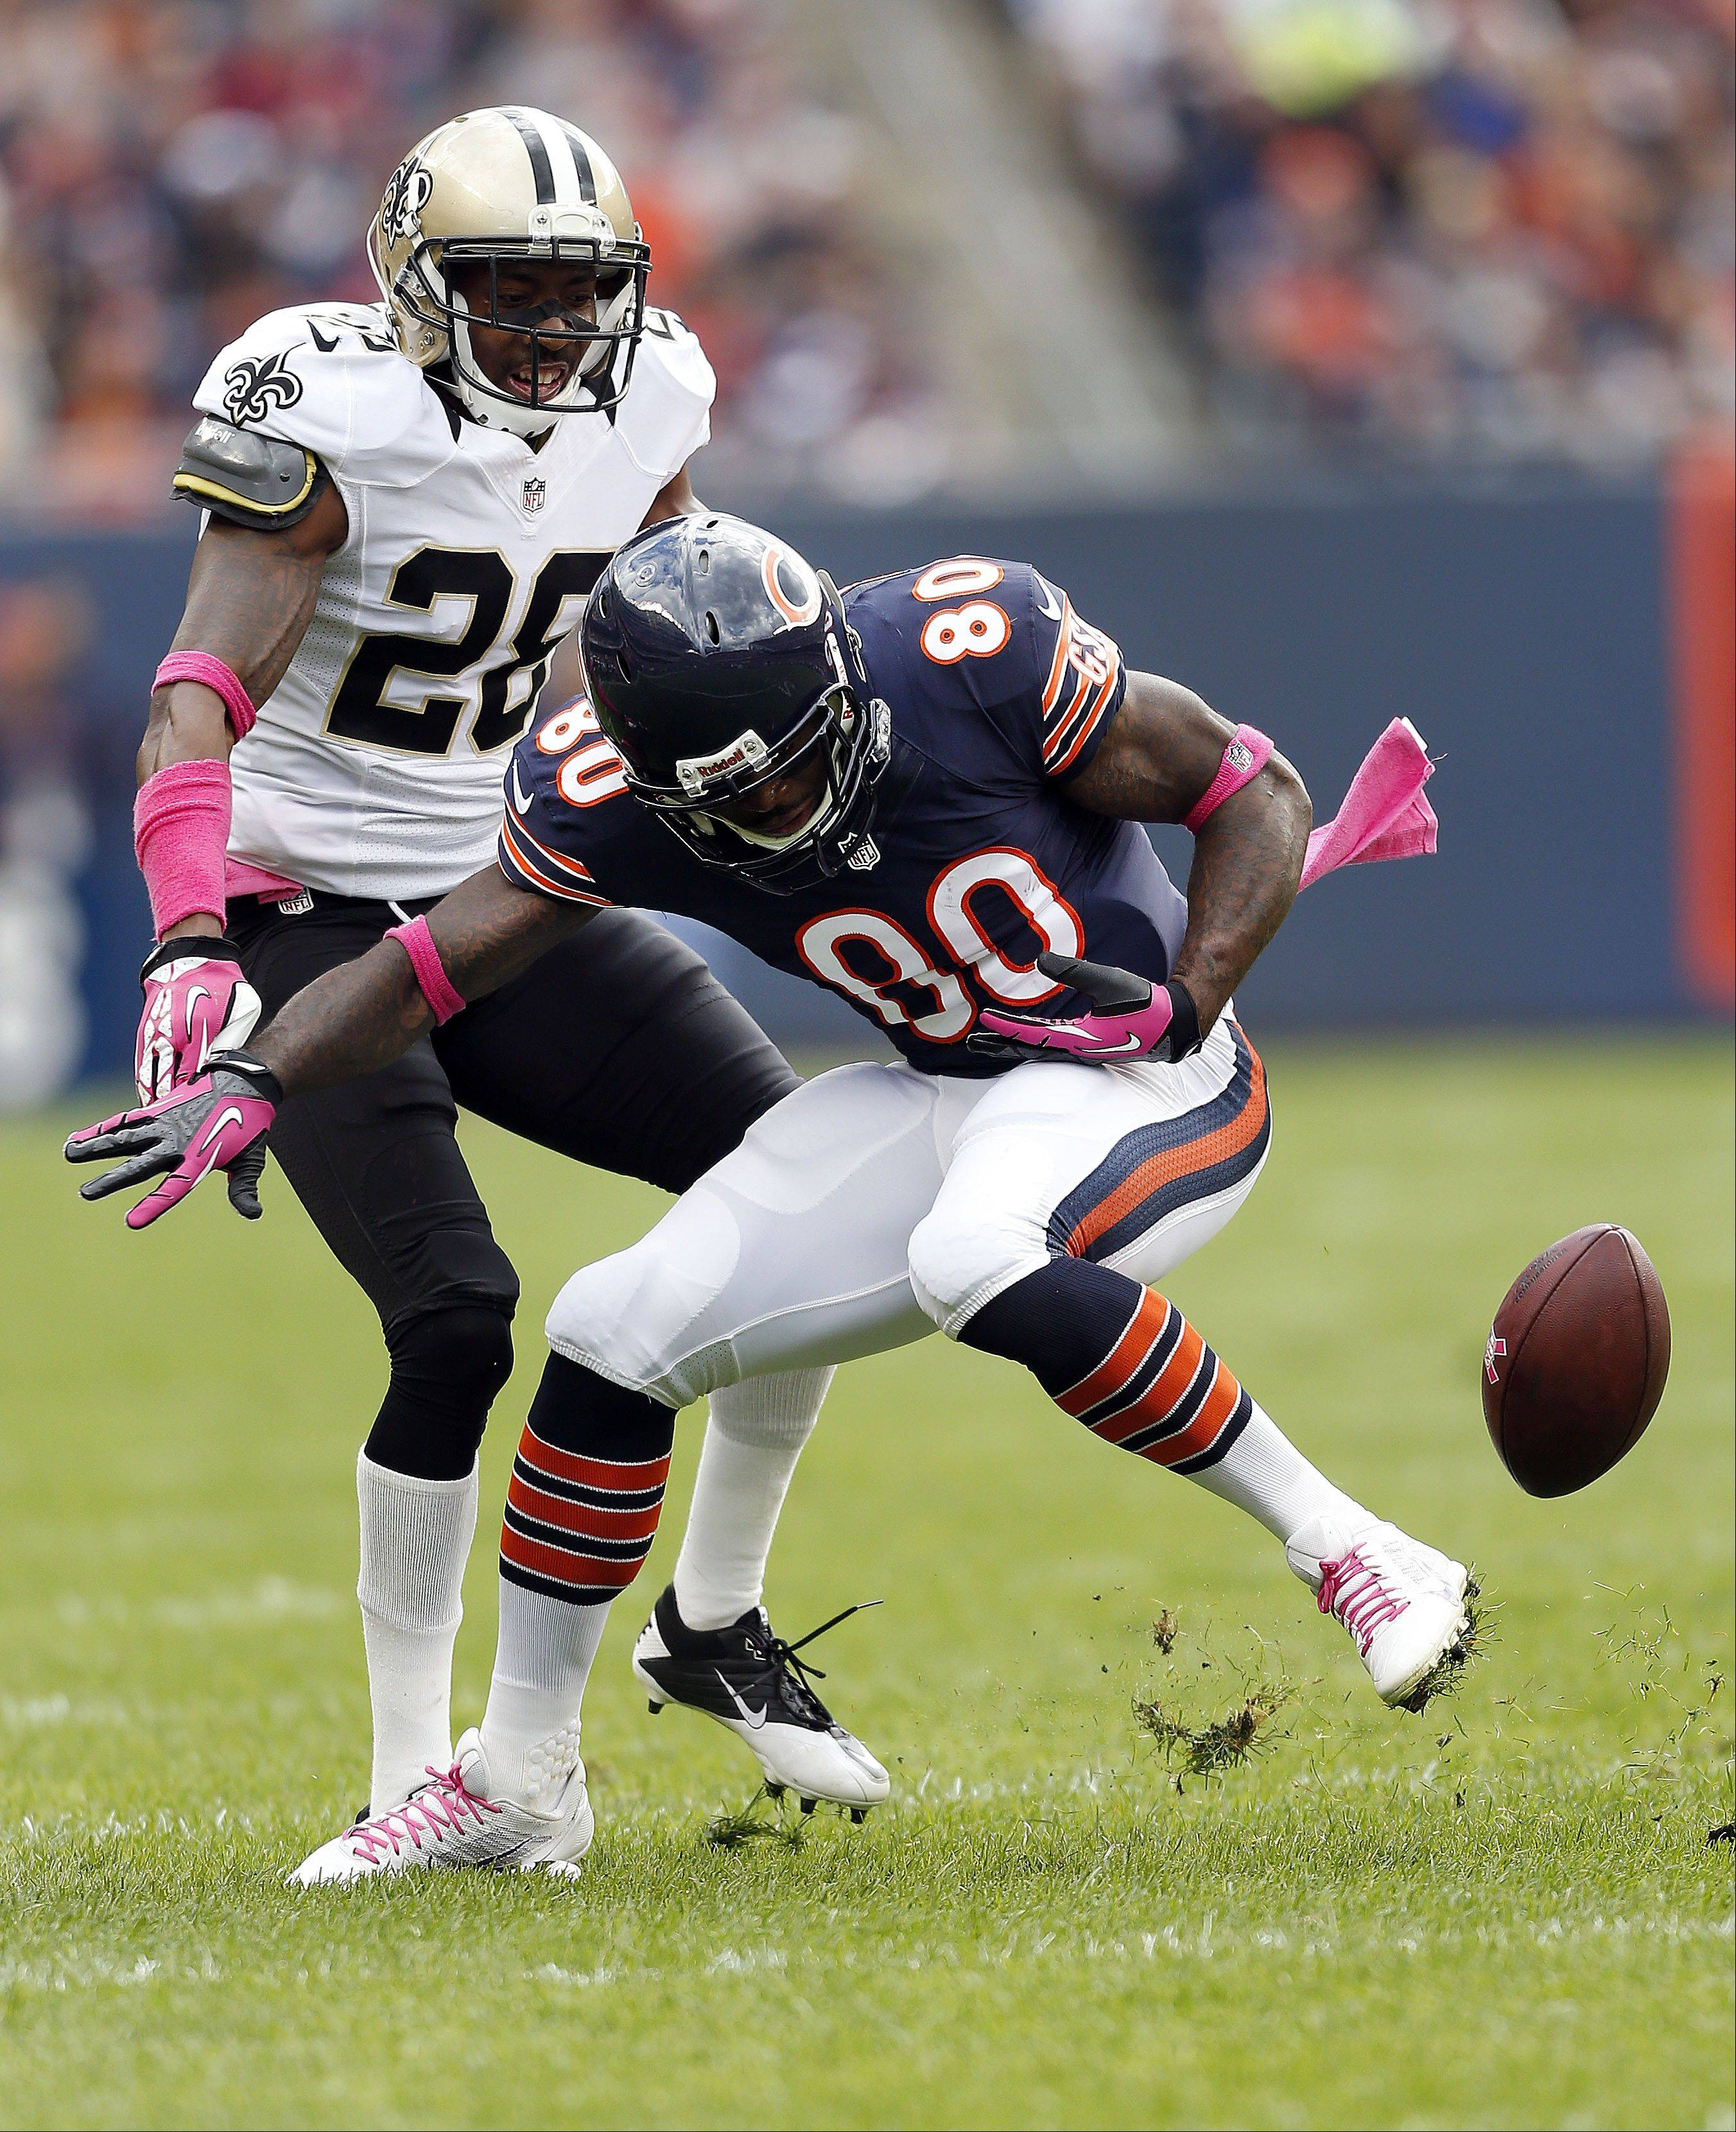 Chicago Bears wide receiver Earl Bennett drops a pass in the 4th quarter.